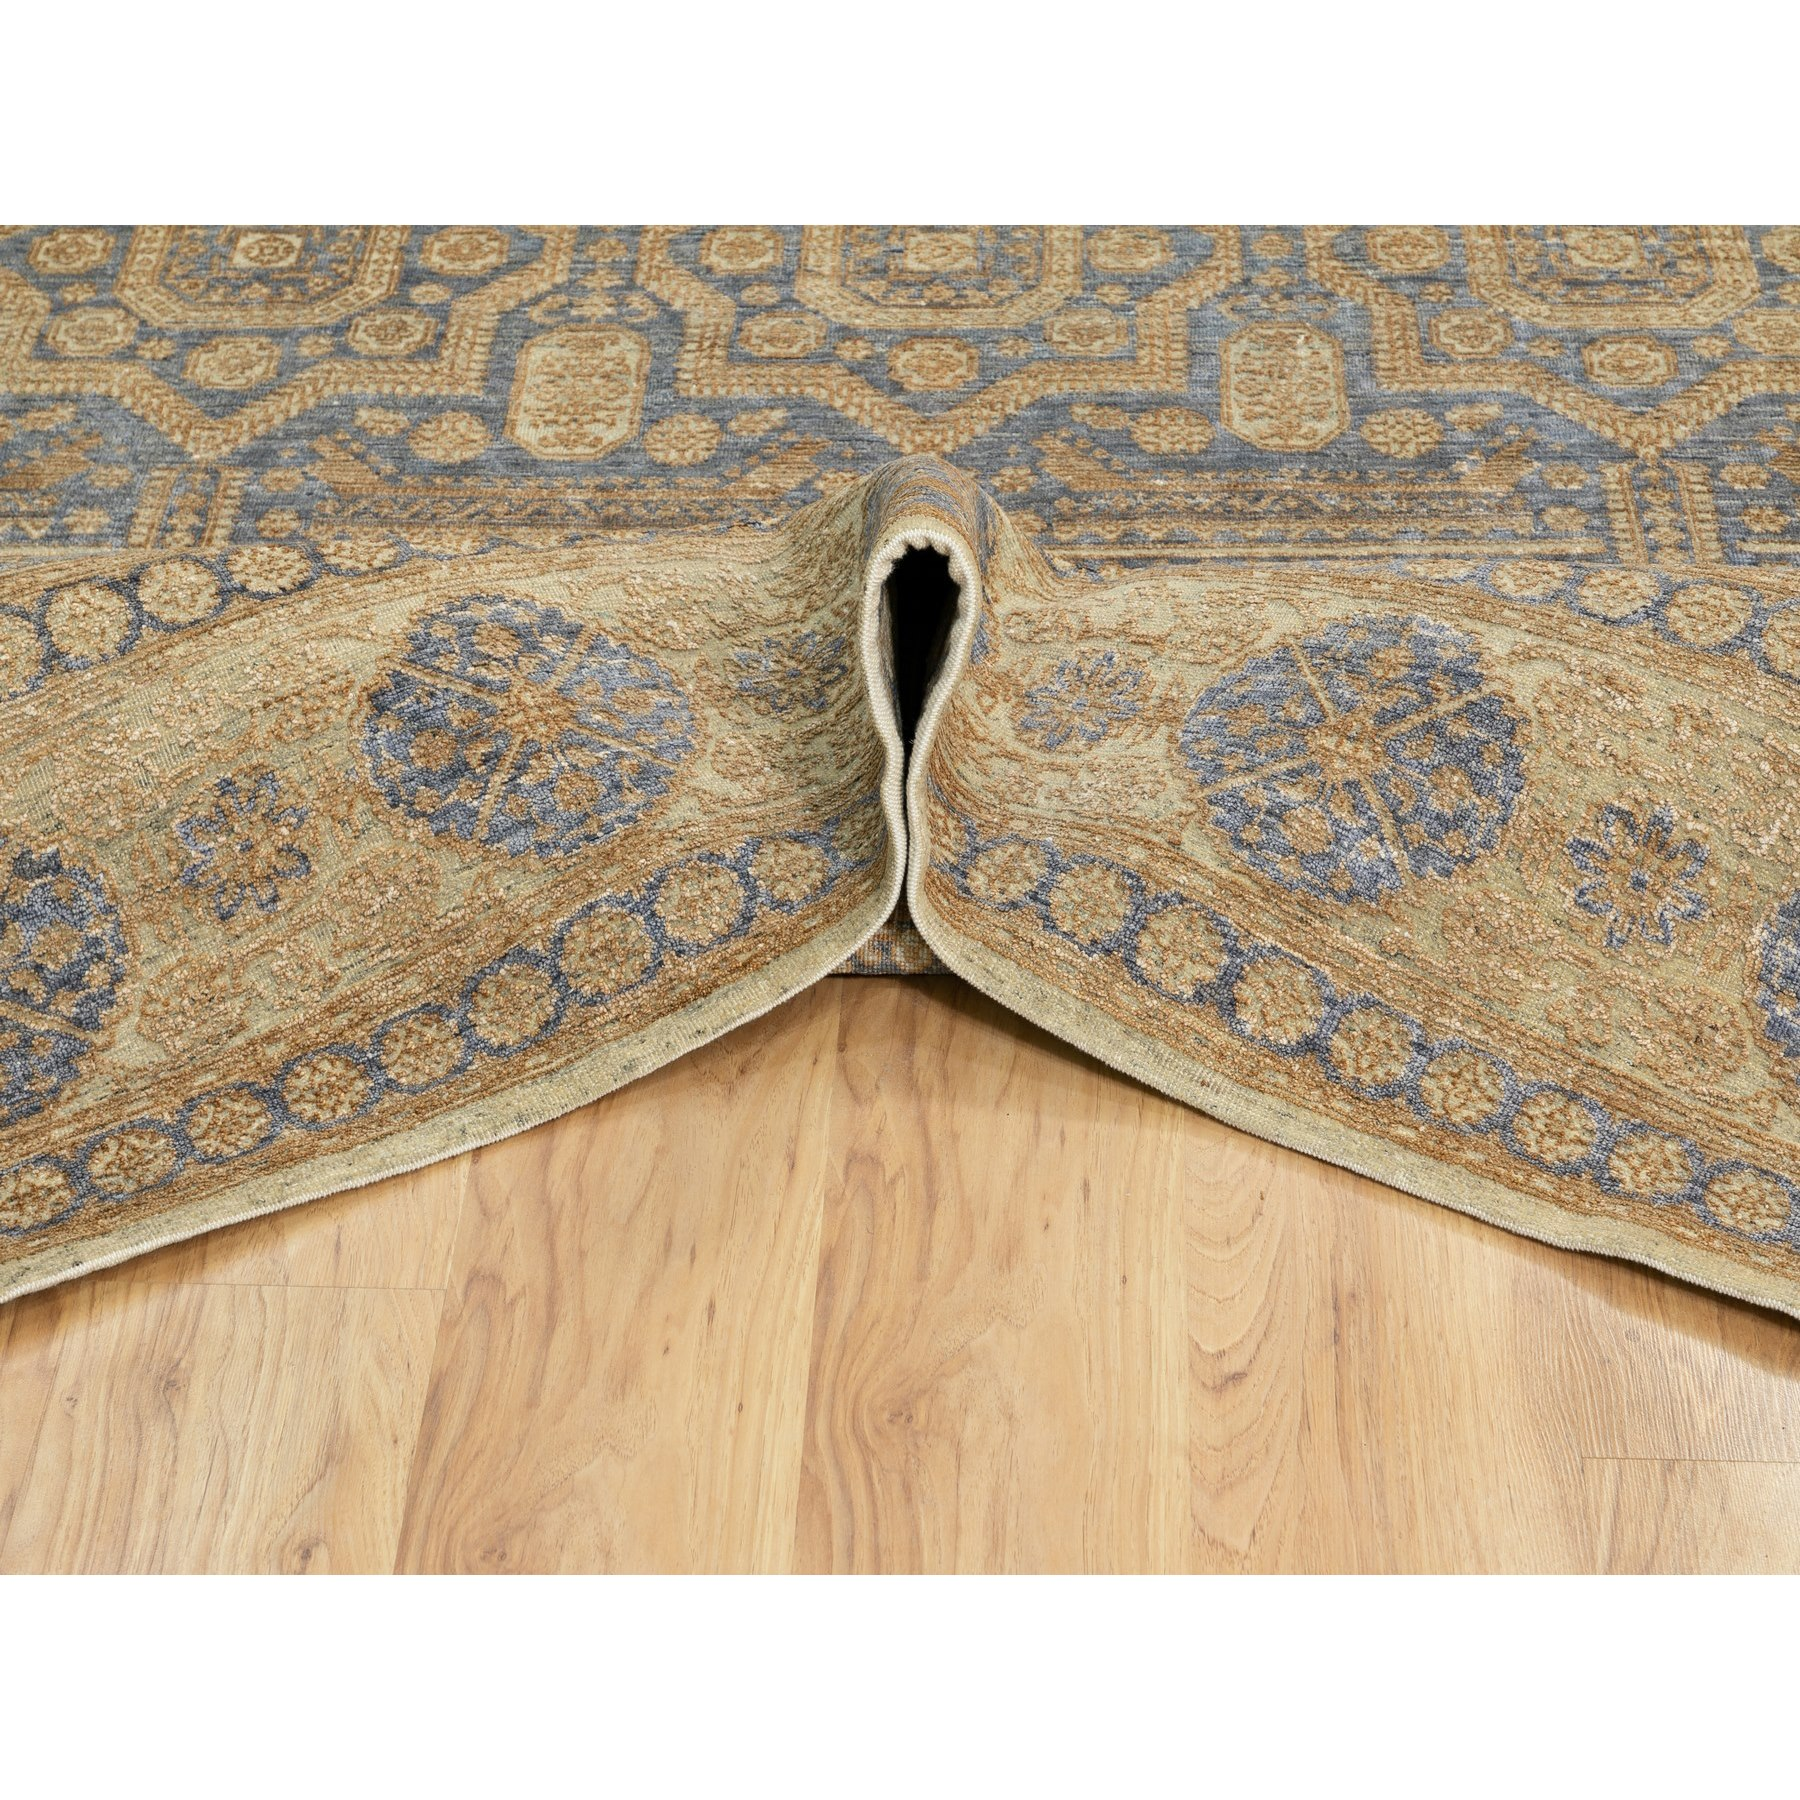 8'x10' Hand Knotted Mamluk Antiqued Gold Design Silk With Textured Wool Oriental Rug